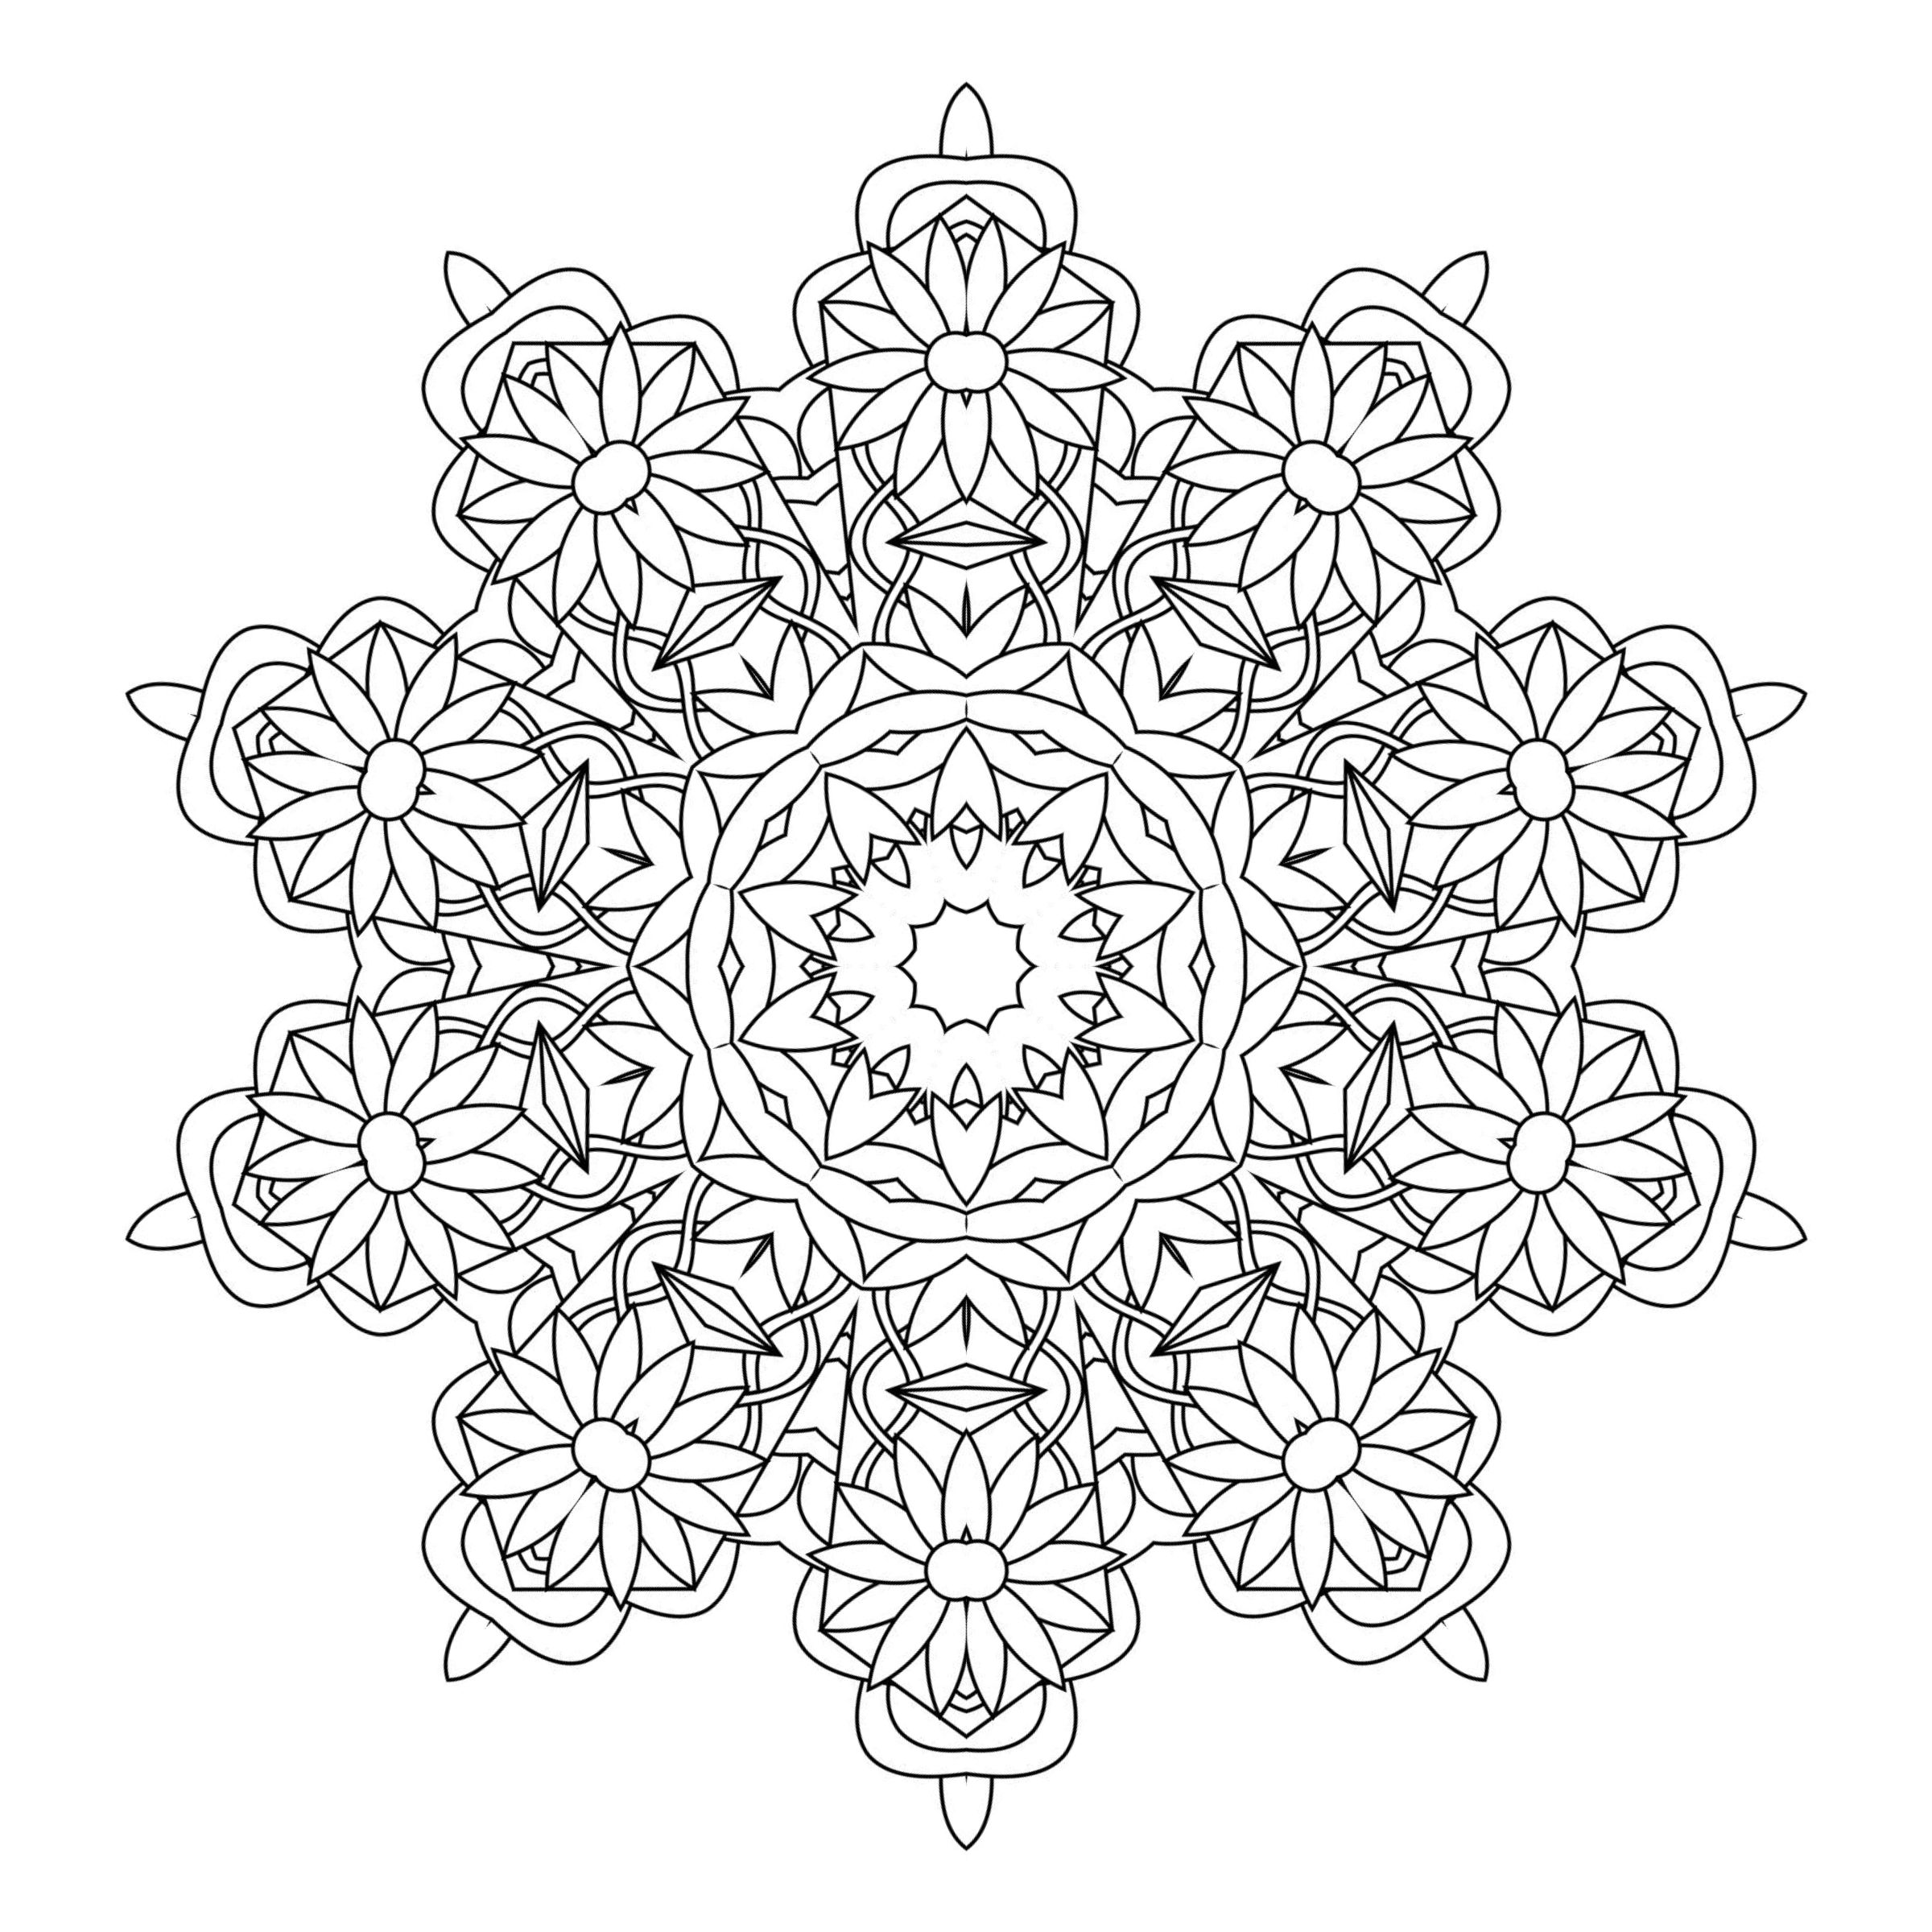 Pin on Adult Coloring Pages MANDALAS